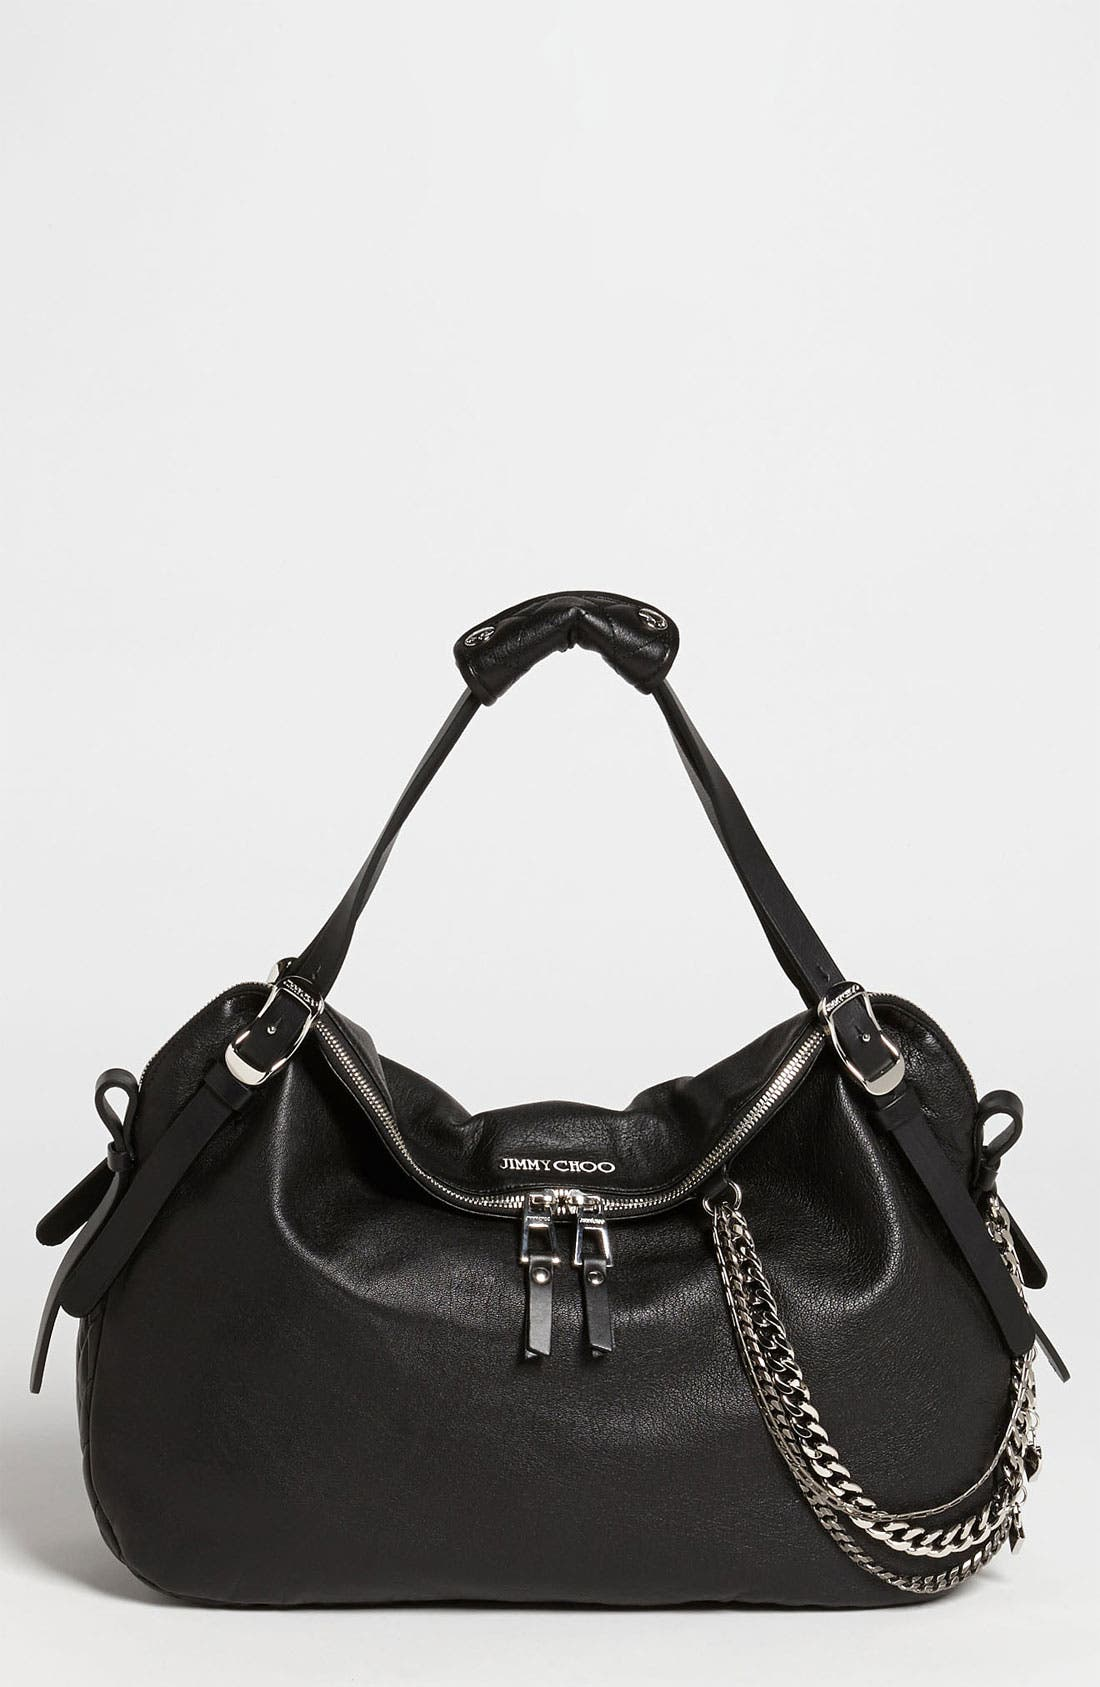 Alternate Image 1 Selected - Jimmy Choo 'Blake Biker' Leather Shopper